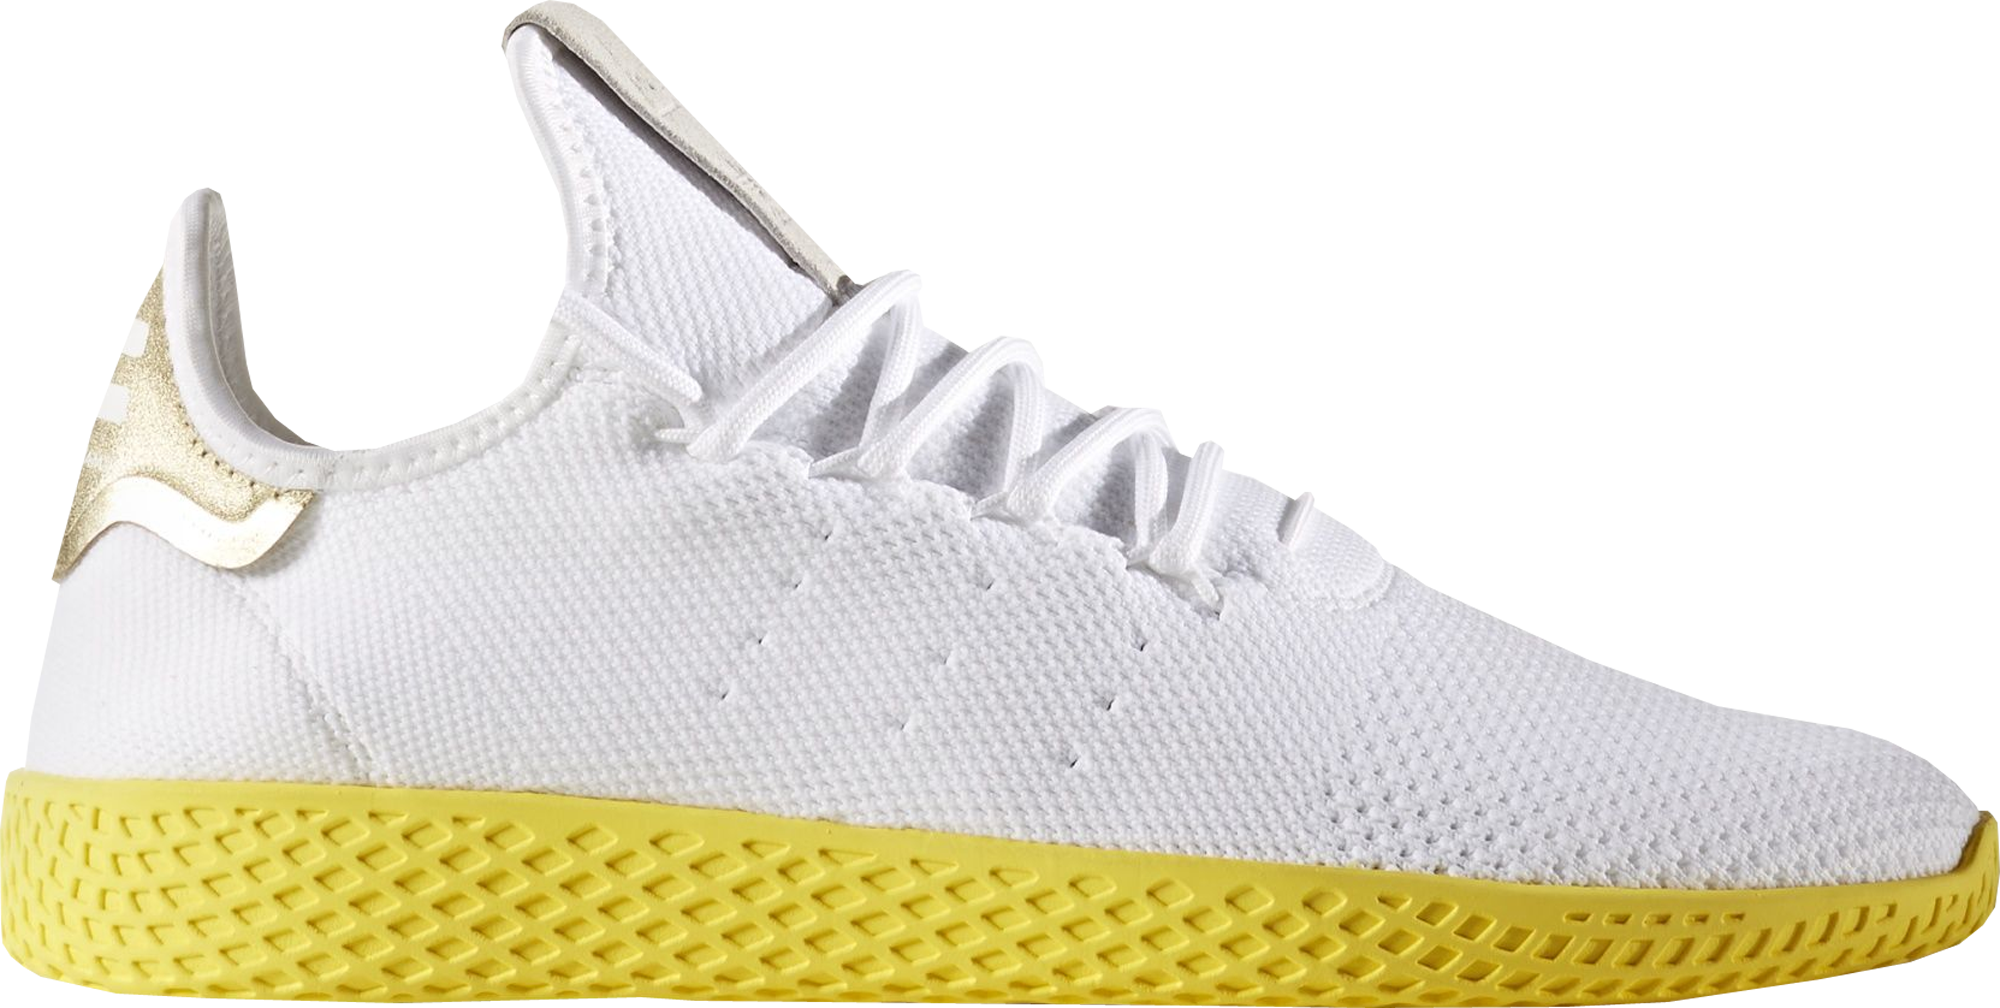 52089999828fd Pharrell Williams x adidas Tennis Hu White Yellow - StockX News